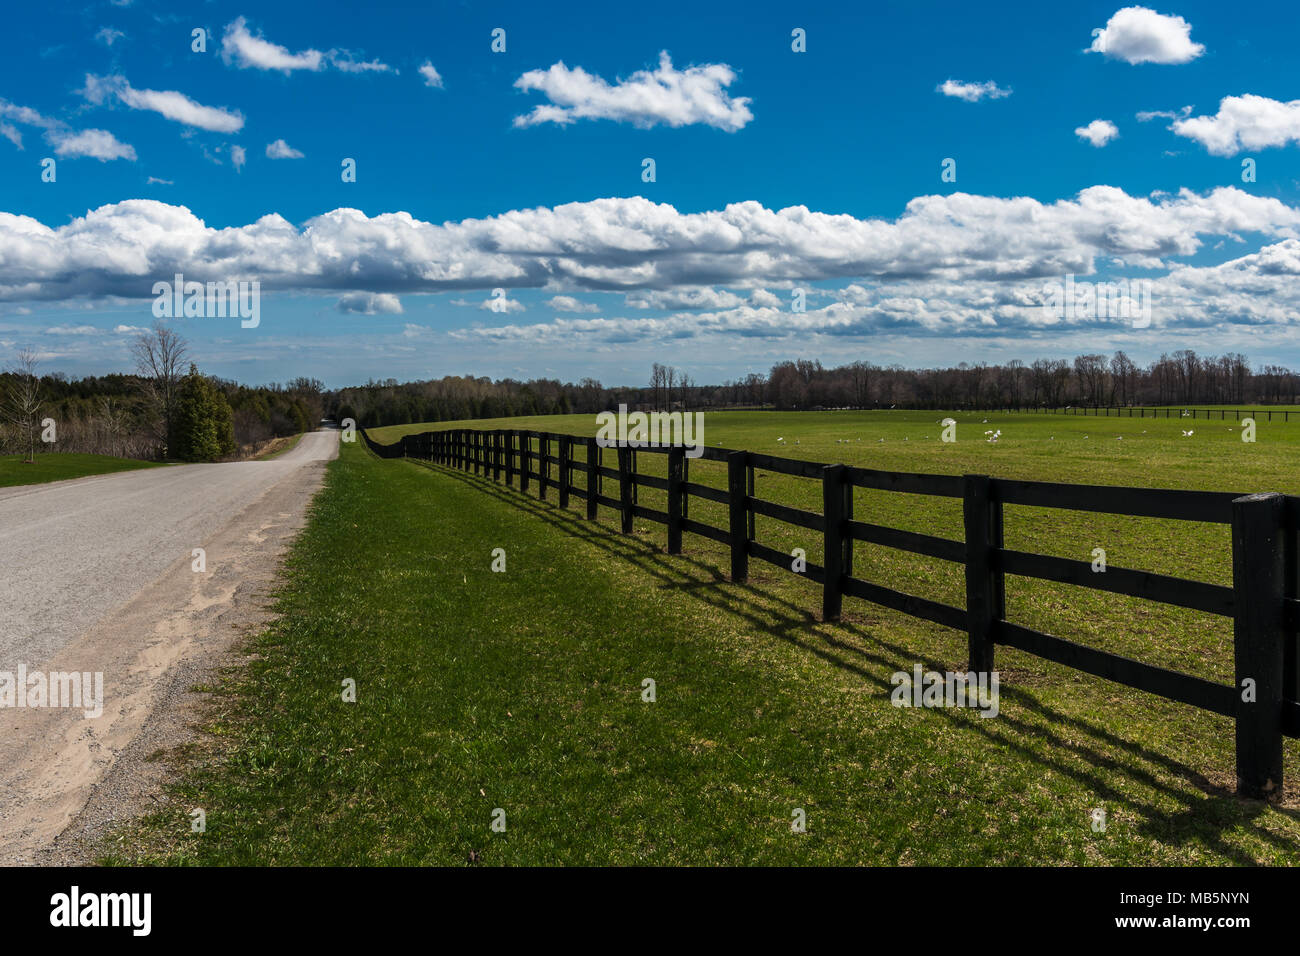 Countryside road showing green pasture and wooden farm fence - Stock Image